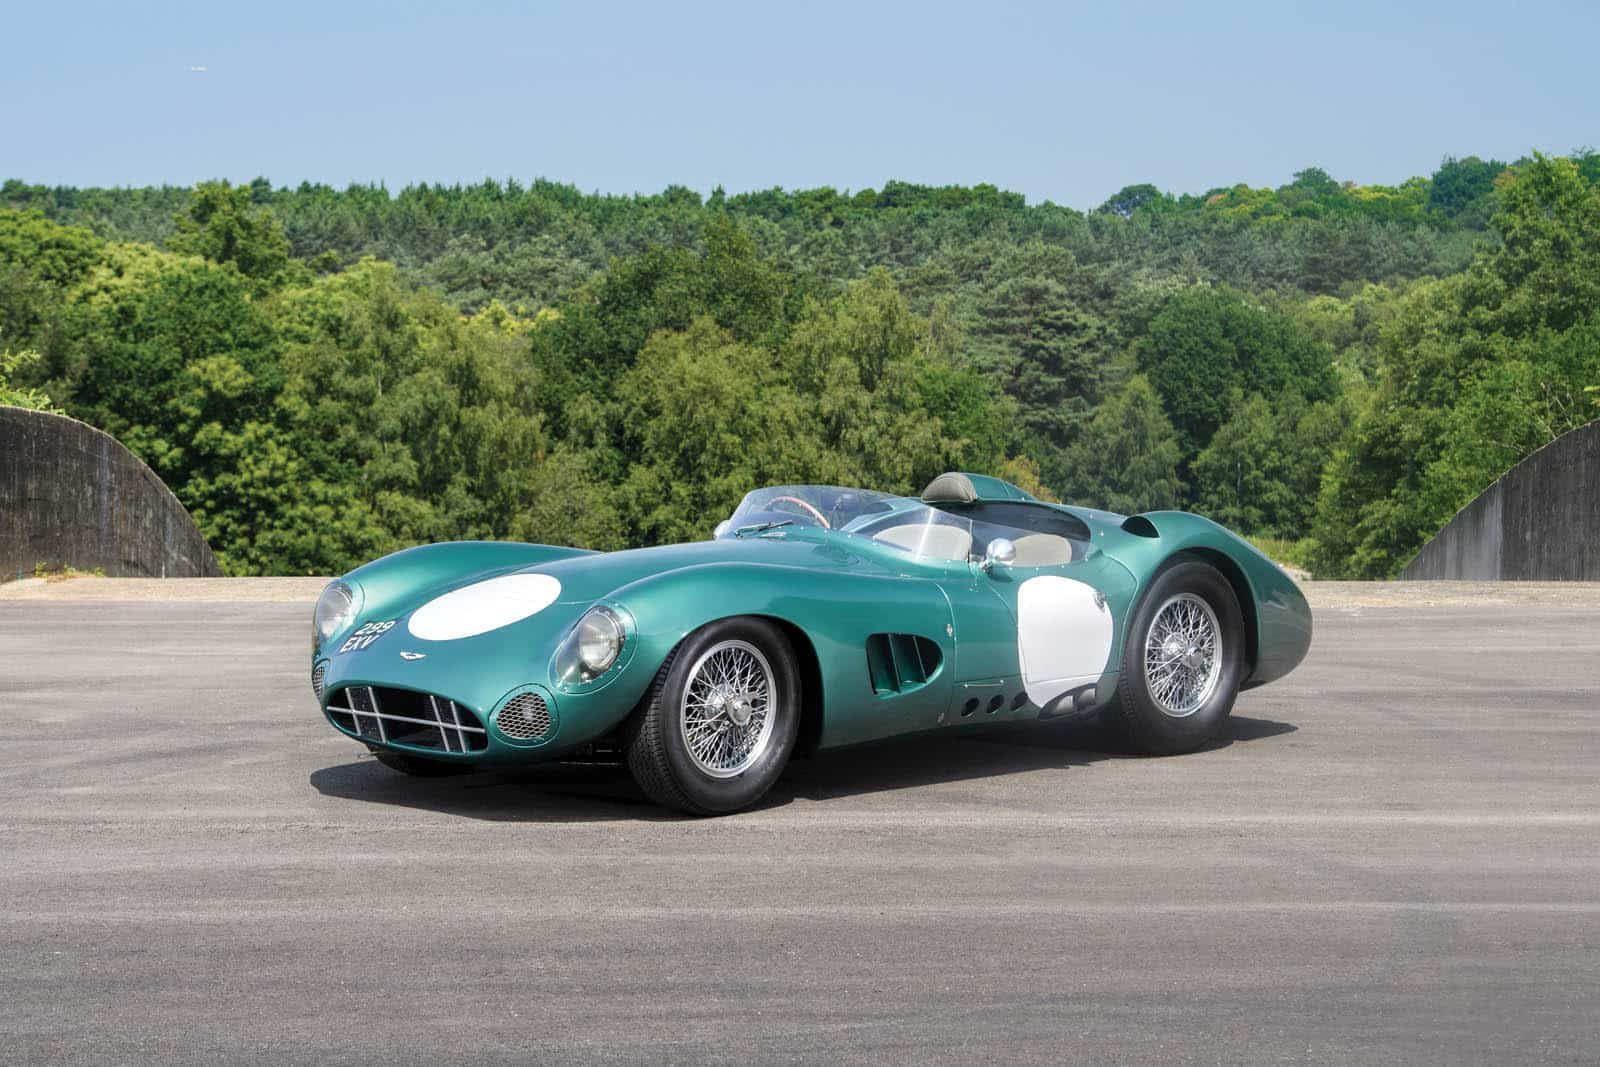 1956 Aston Martin Dbr1 Expected To Sell For Over 20 Million